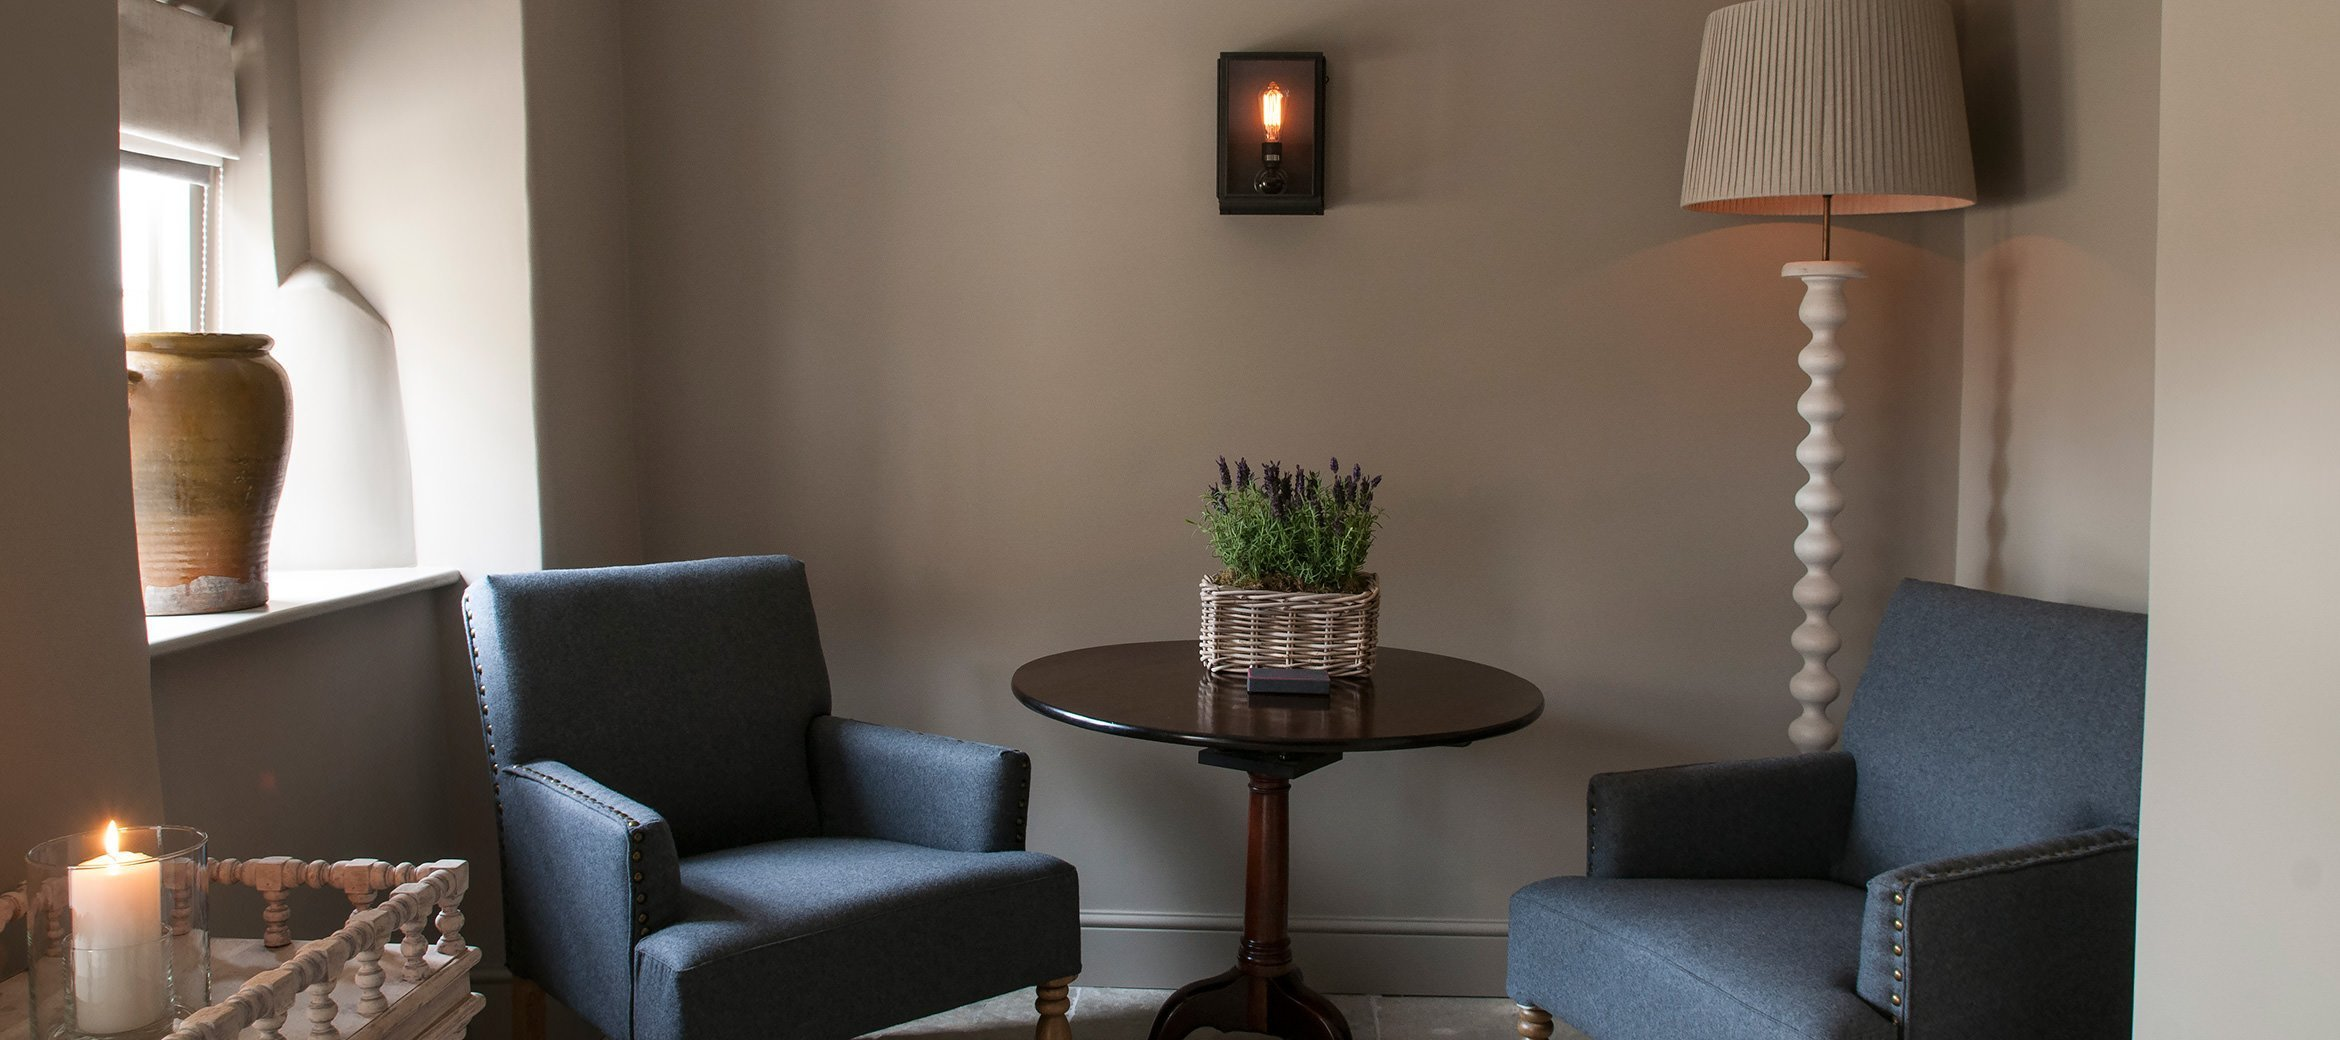 dovecote-luxury-cotswold-sitting-room-armchairs